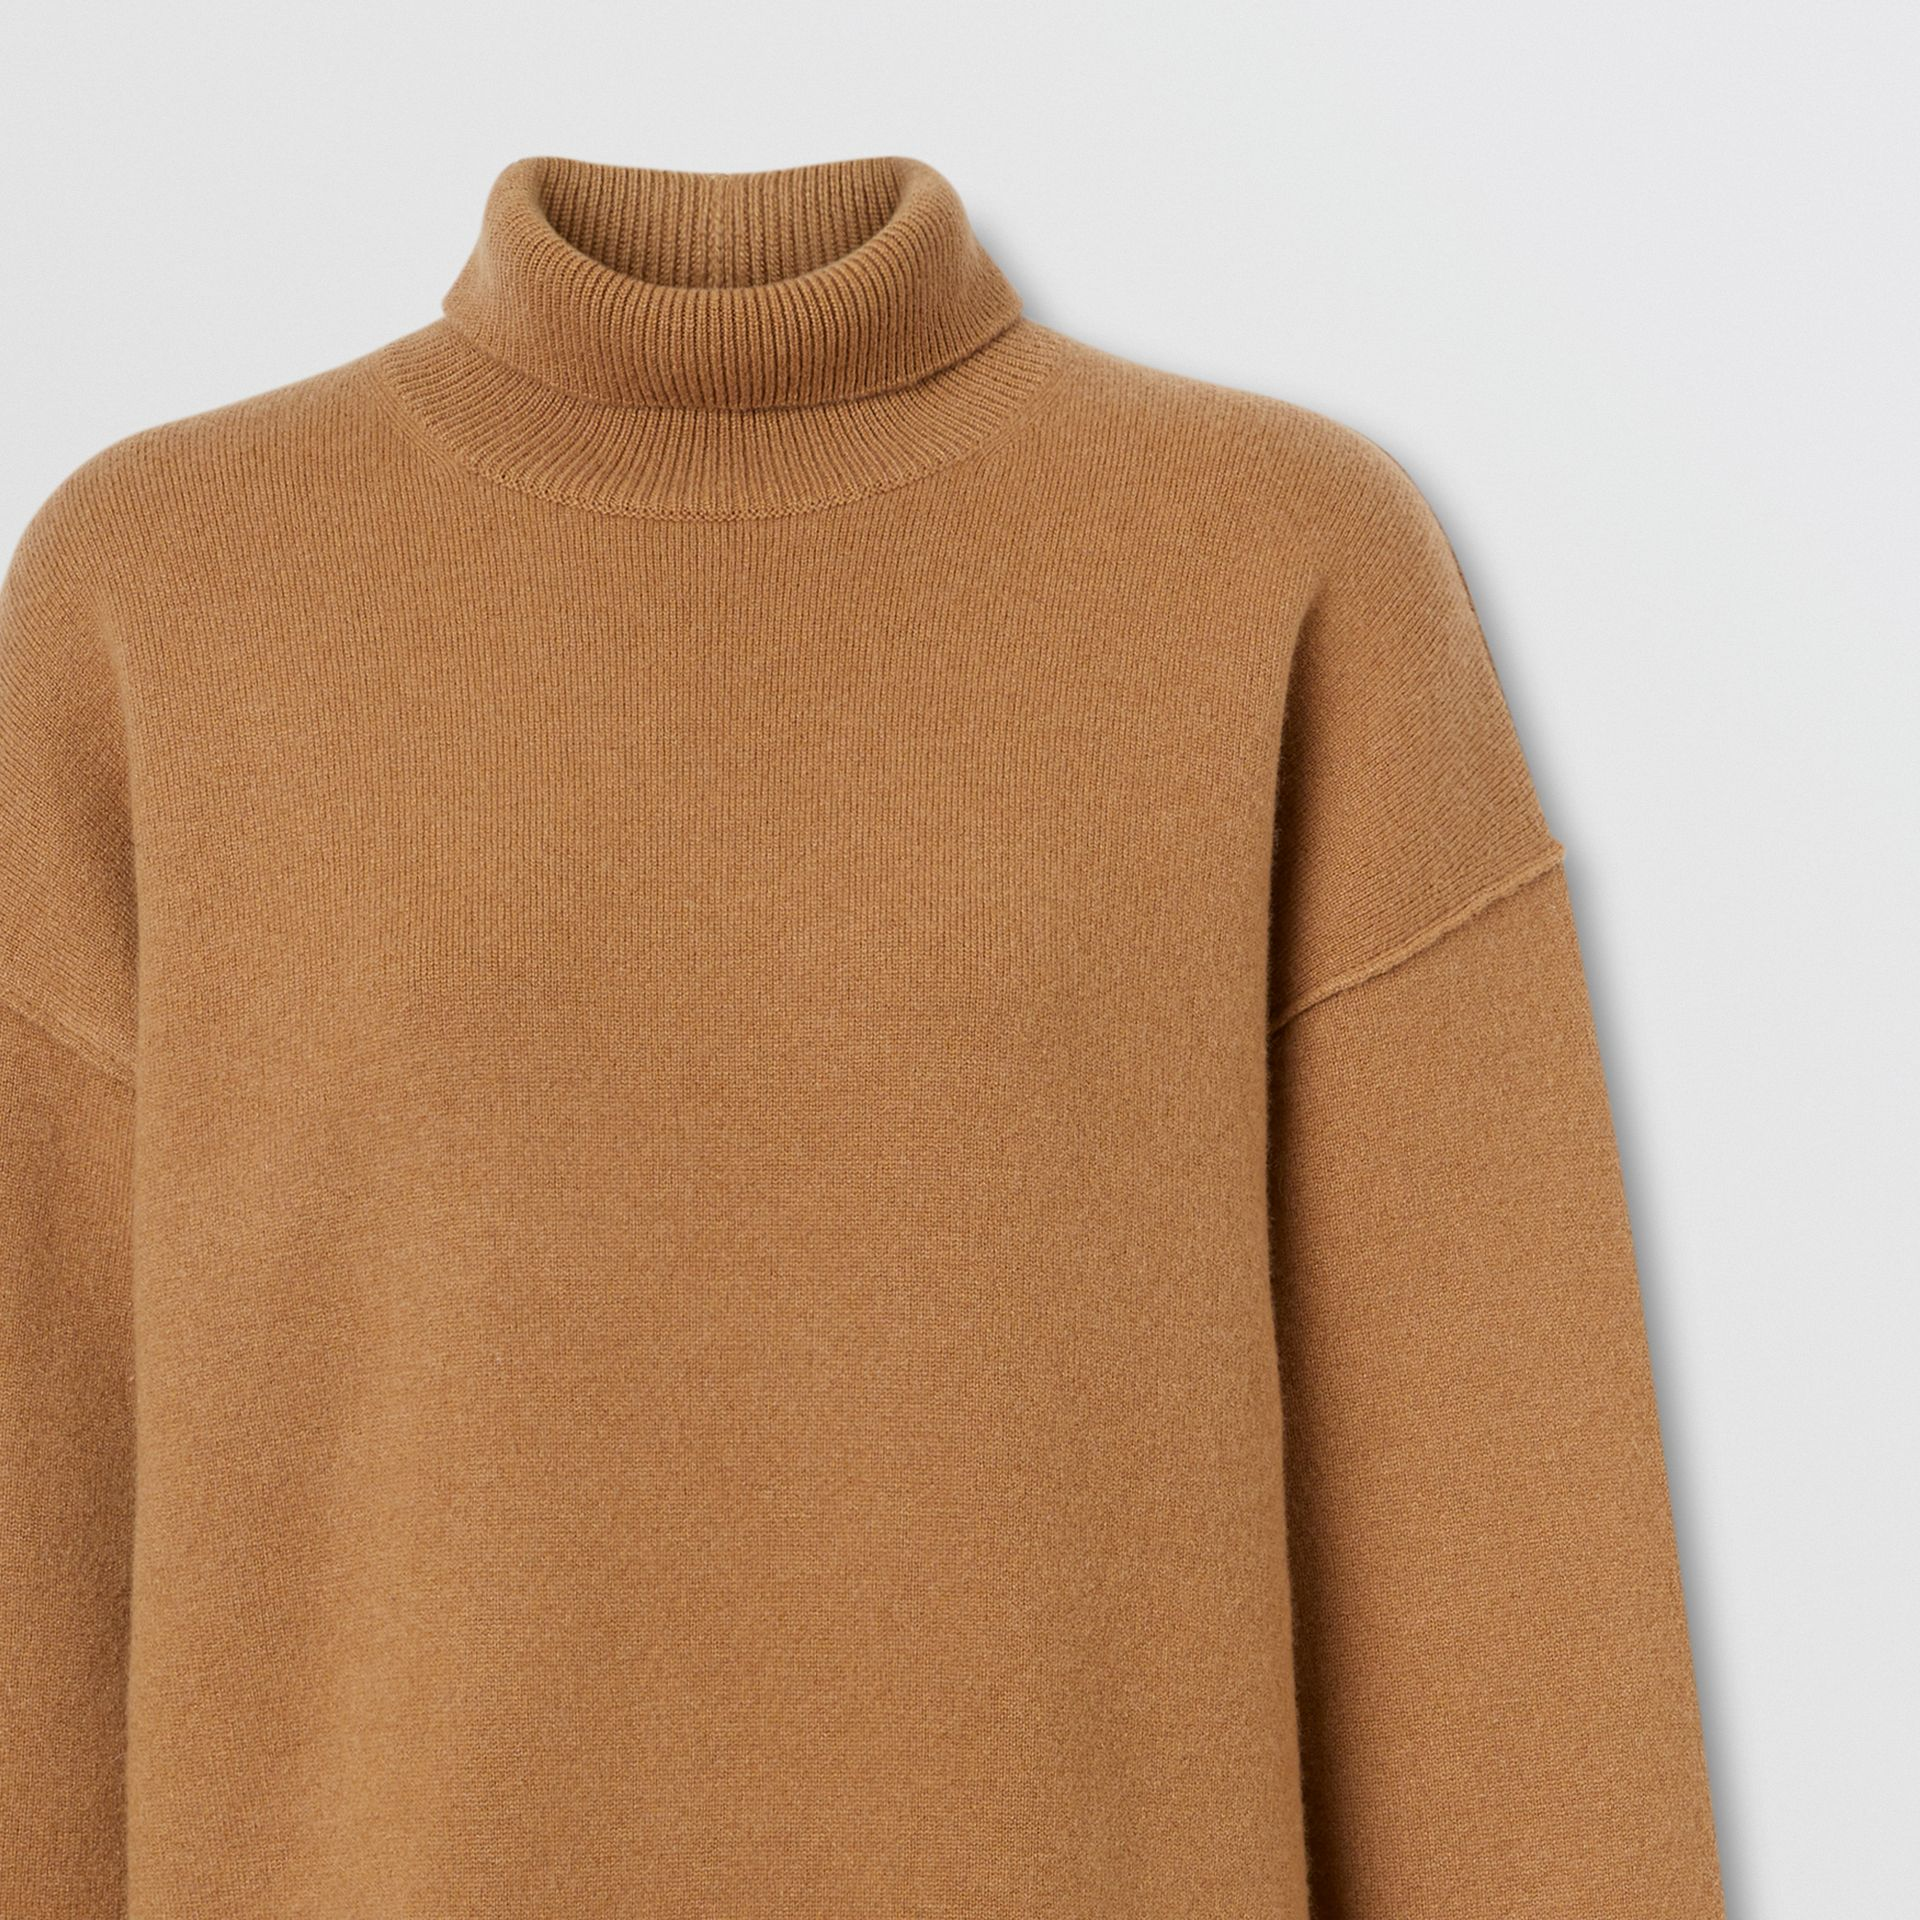 Monogram Motif Cashmere Blend Funnel Neck Sweater in Camel - Women | Burberry - gallery image 6